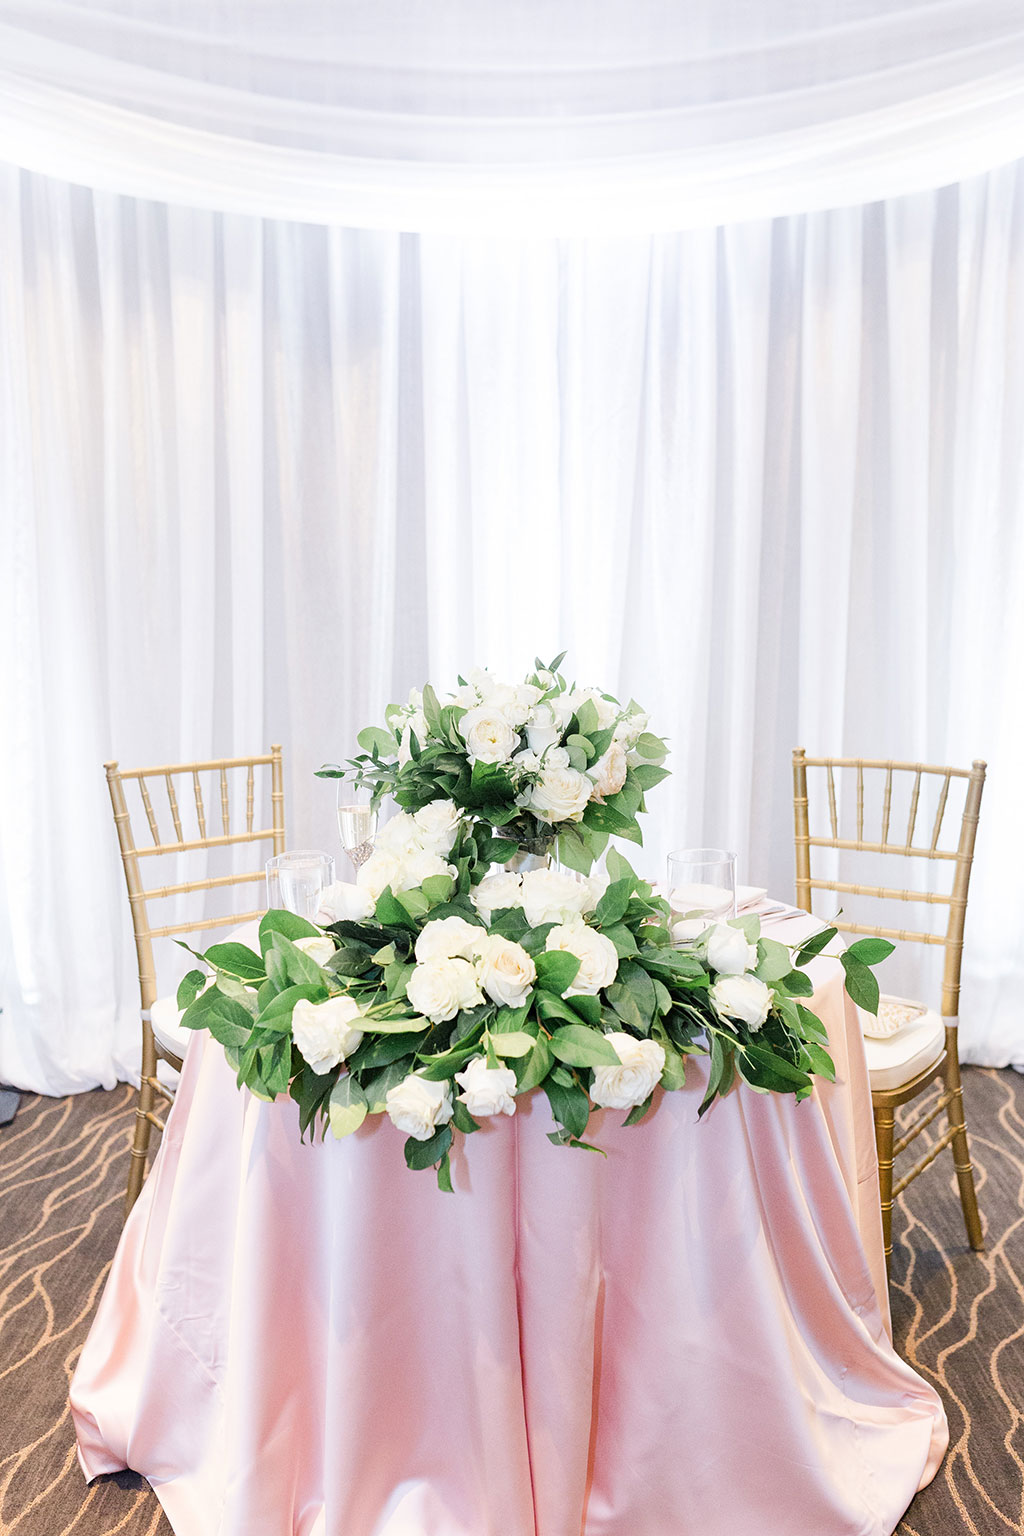 chair covers rental cleveland ohio think steelcase sitting pretty linens specialty backdrops draping and more about us